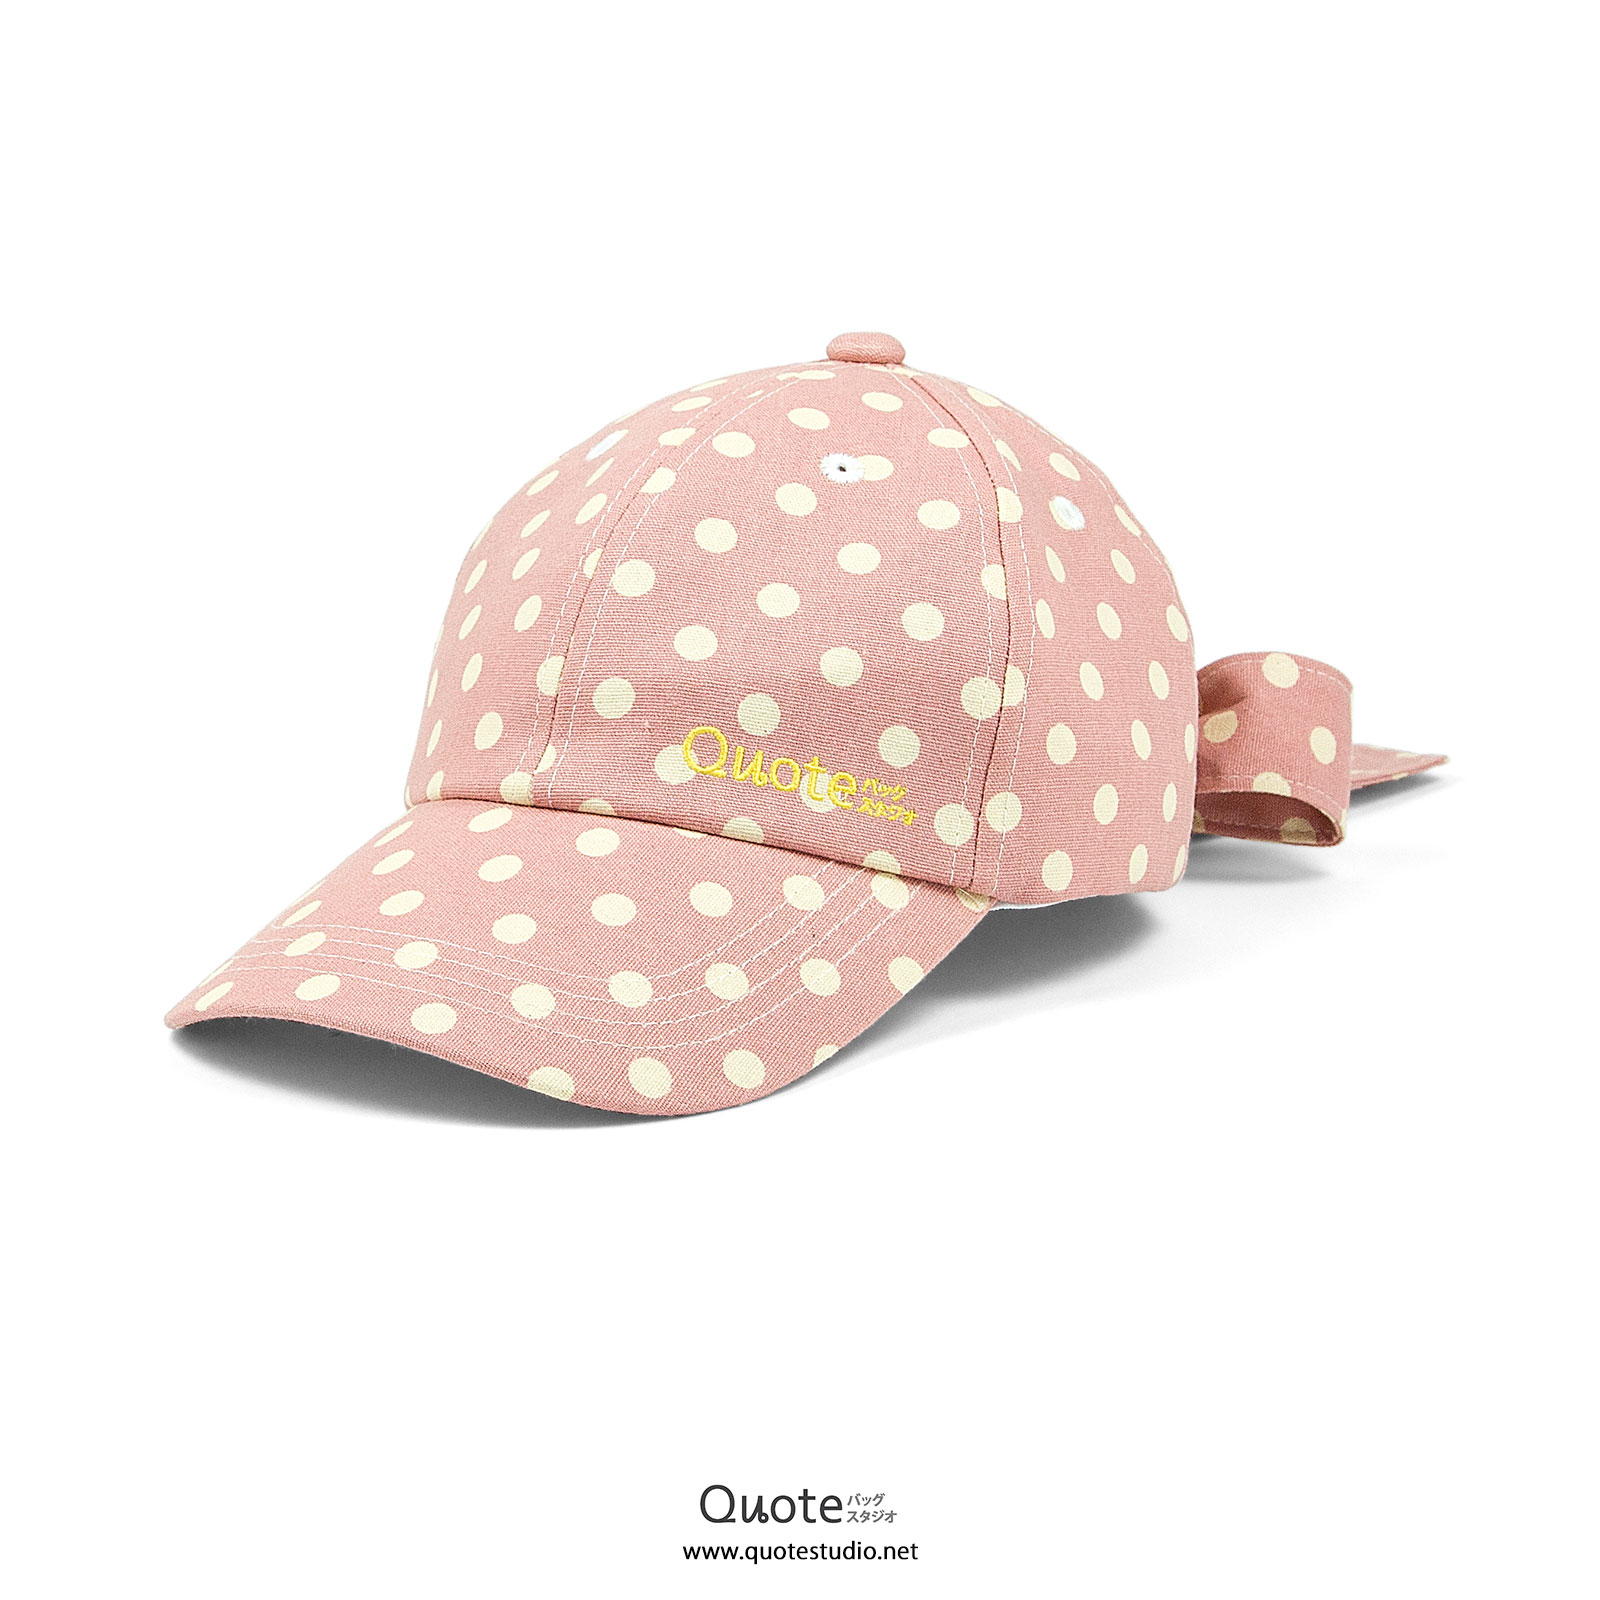 Daydreaming Bow cap リボンキャップを空想